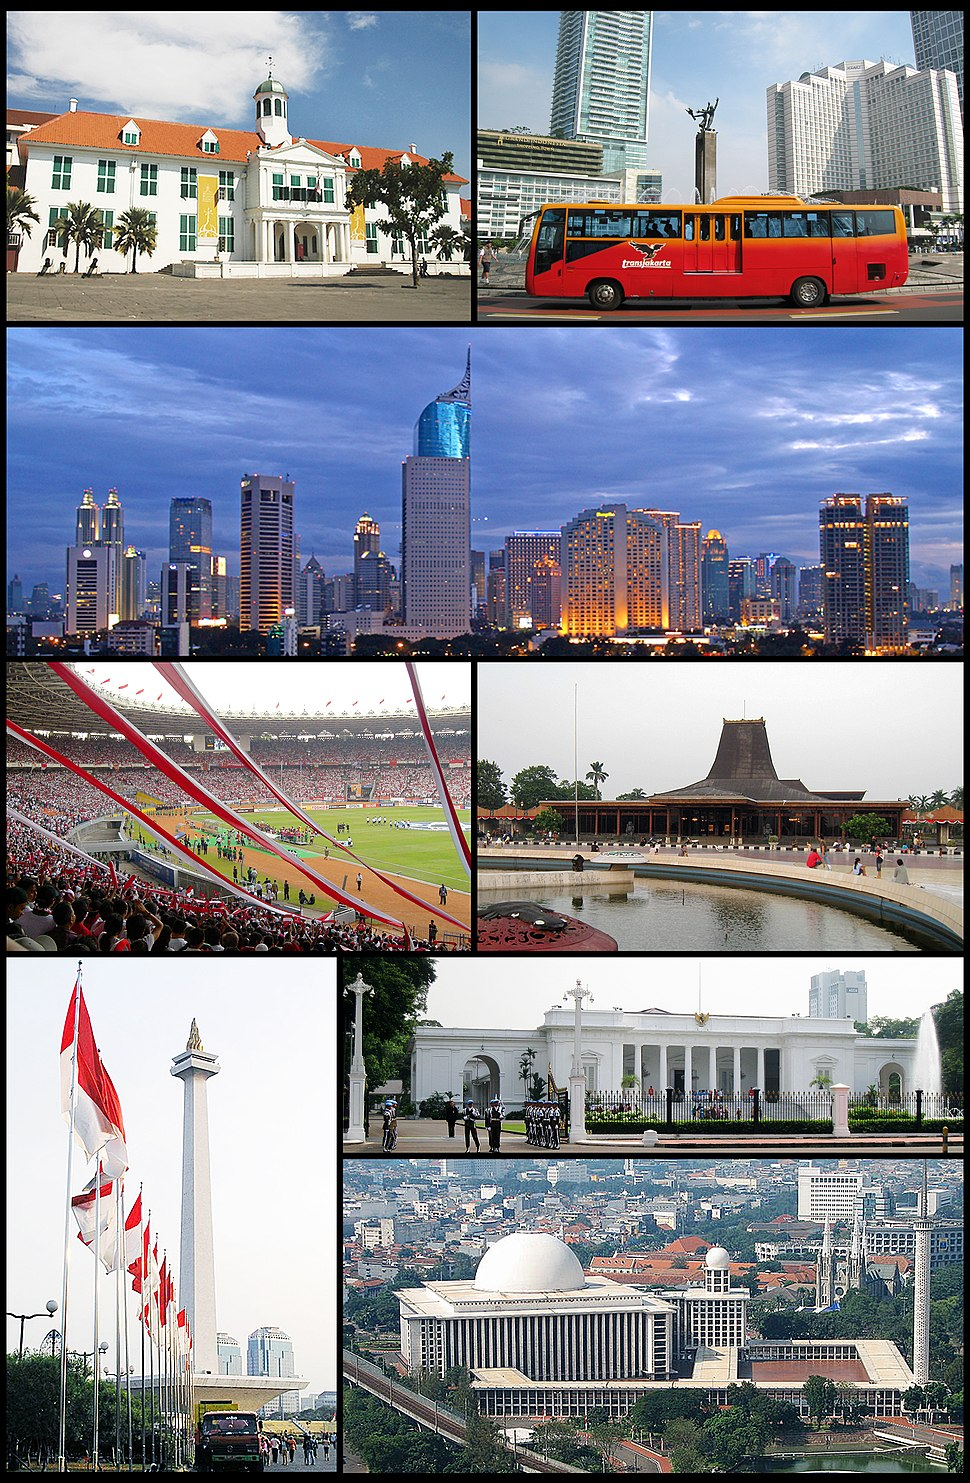 From top, left to right: Jakarta Old Town, Hotel Indonesia Roundabout, Jakarta Skyline, Gelora Bung Karno Stadium, Taman Mini Indonesia Indah, Monumen Nasional, Merdeka Palace, Istiqlal Mosque and Jakarta Cathedral